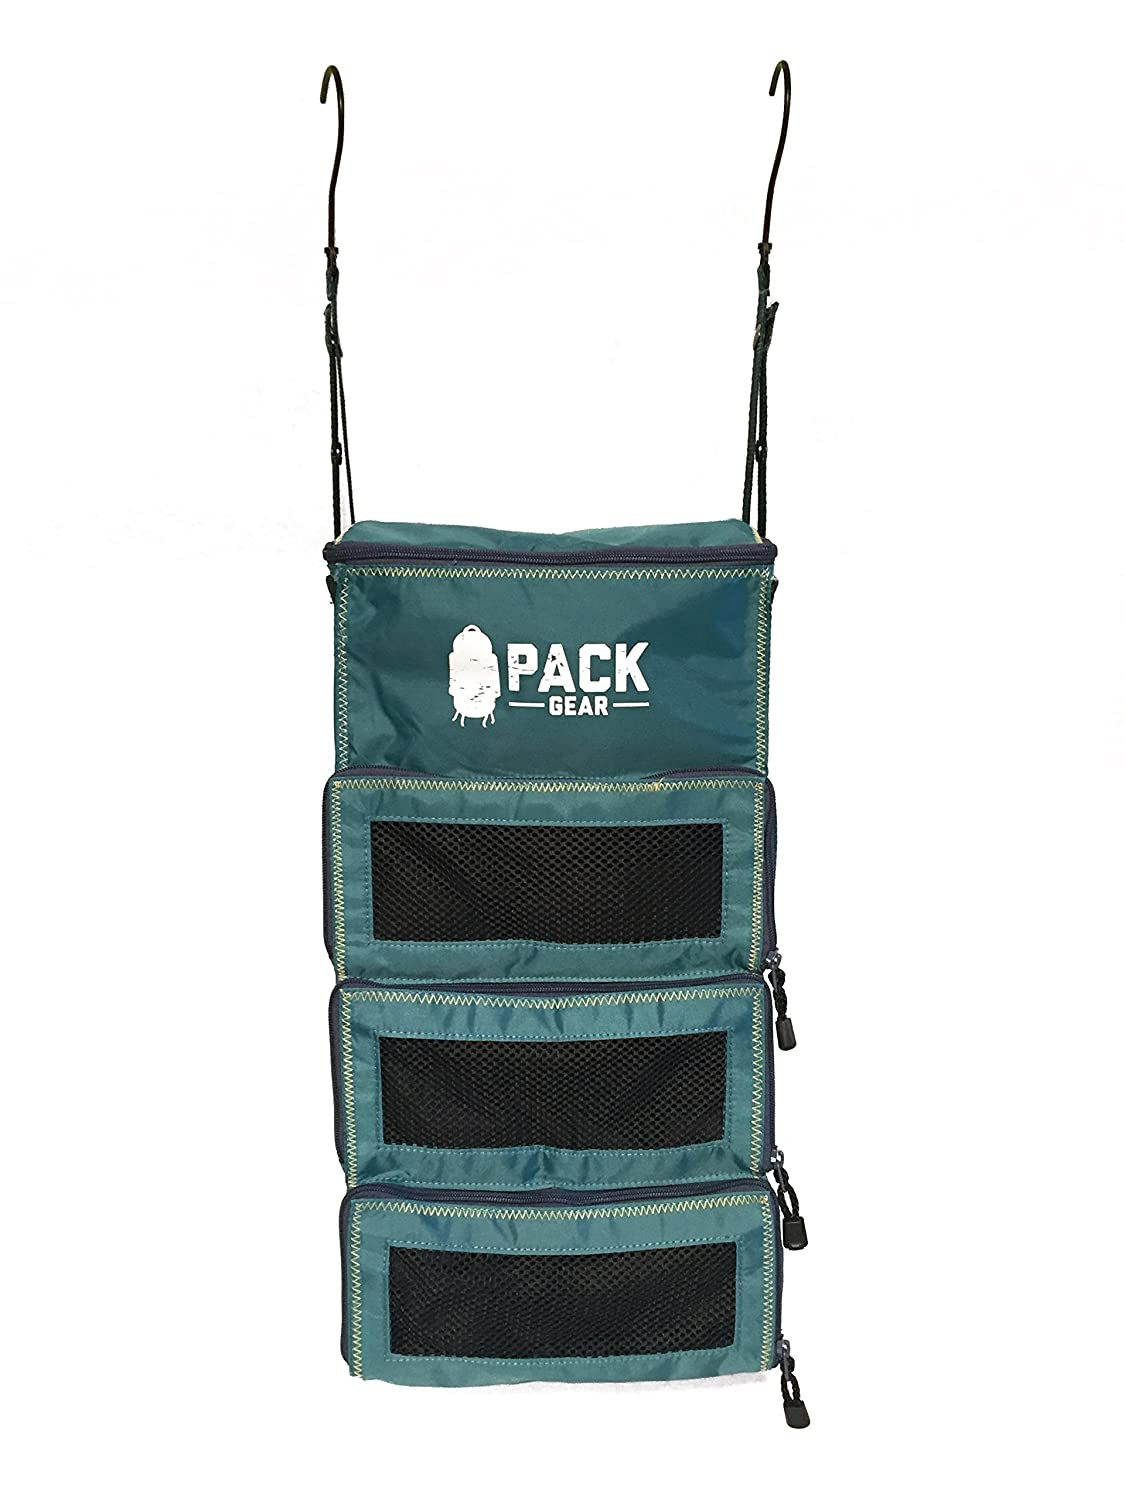 PACK Gear Hanging Backpack and Carry-On Organizer (with Zippers), Built In Hooks for Convenient Hanging, Holds More Than 4 Packing Cubes, Durable, Only 9oz. ZPACKTeal